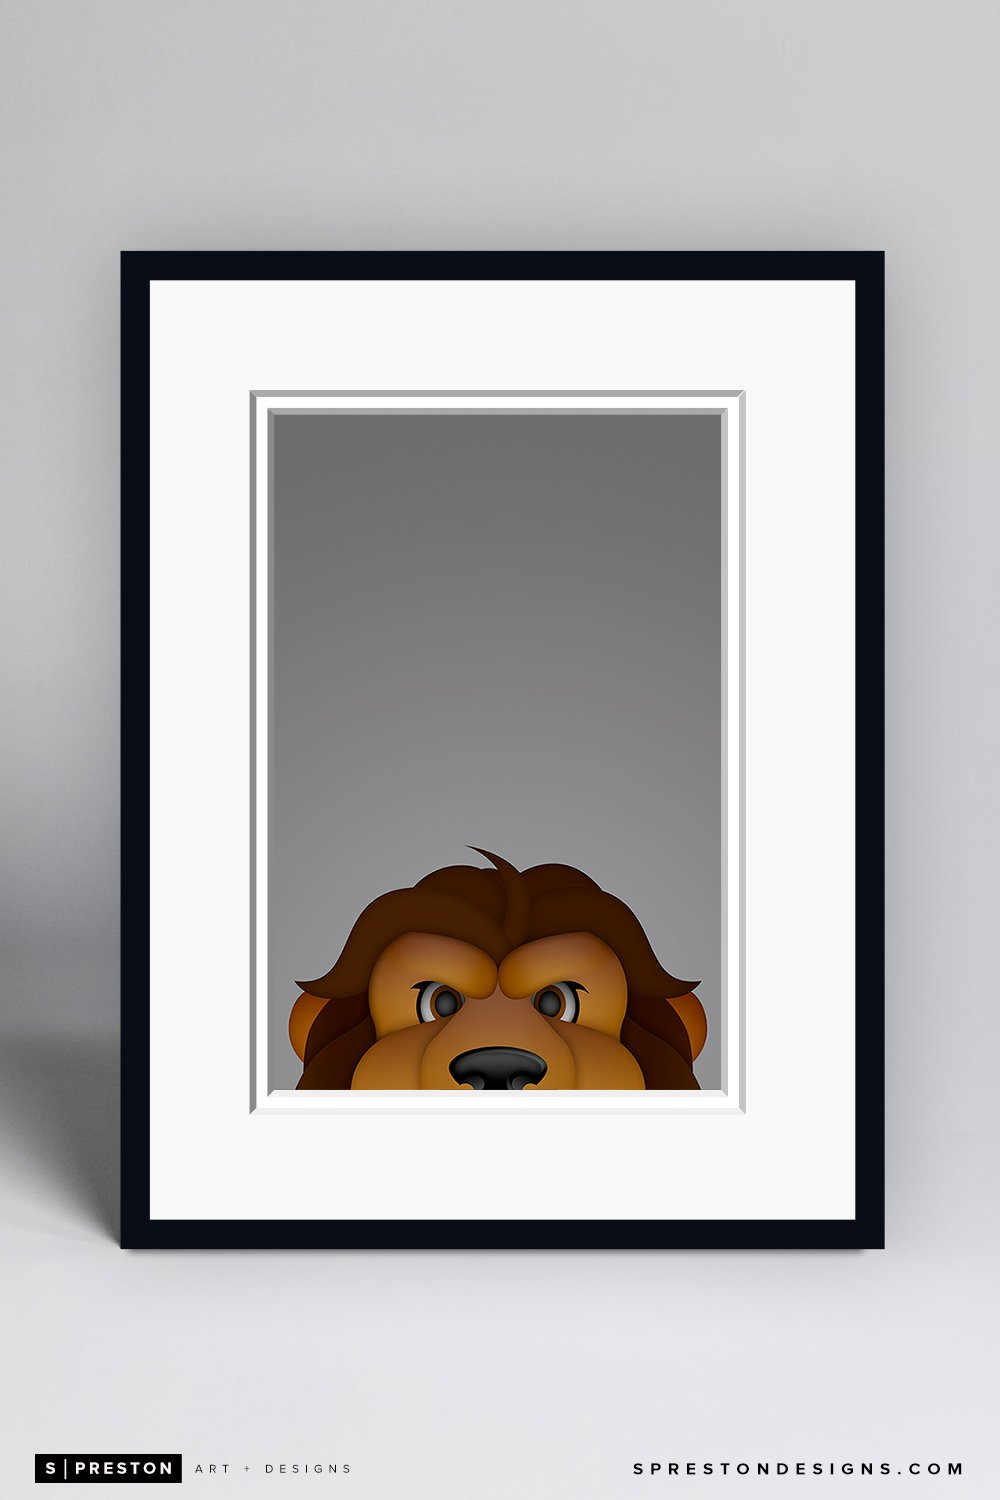 Minimalist Bailey Art Print - Los Angeles Kings - S. Preston Art + Designs